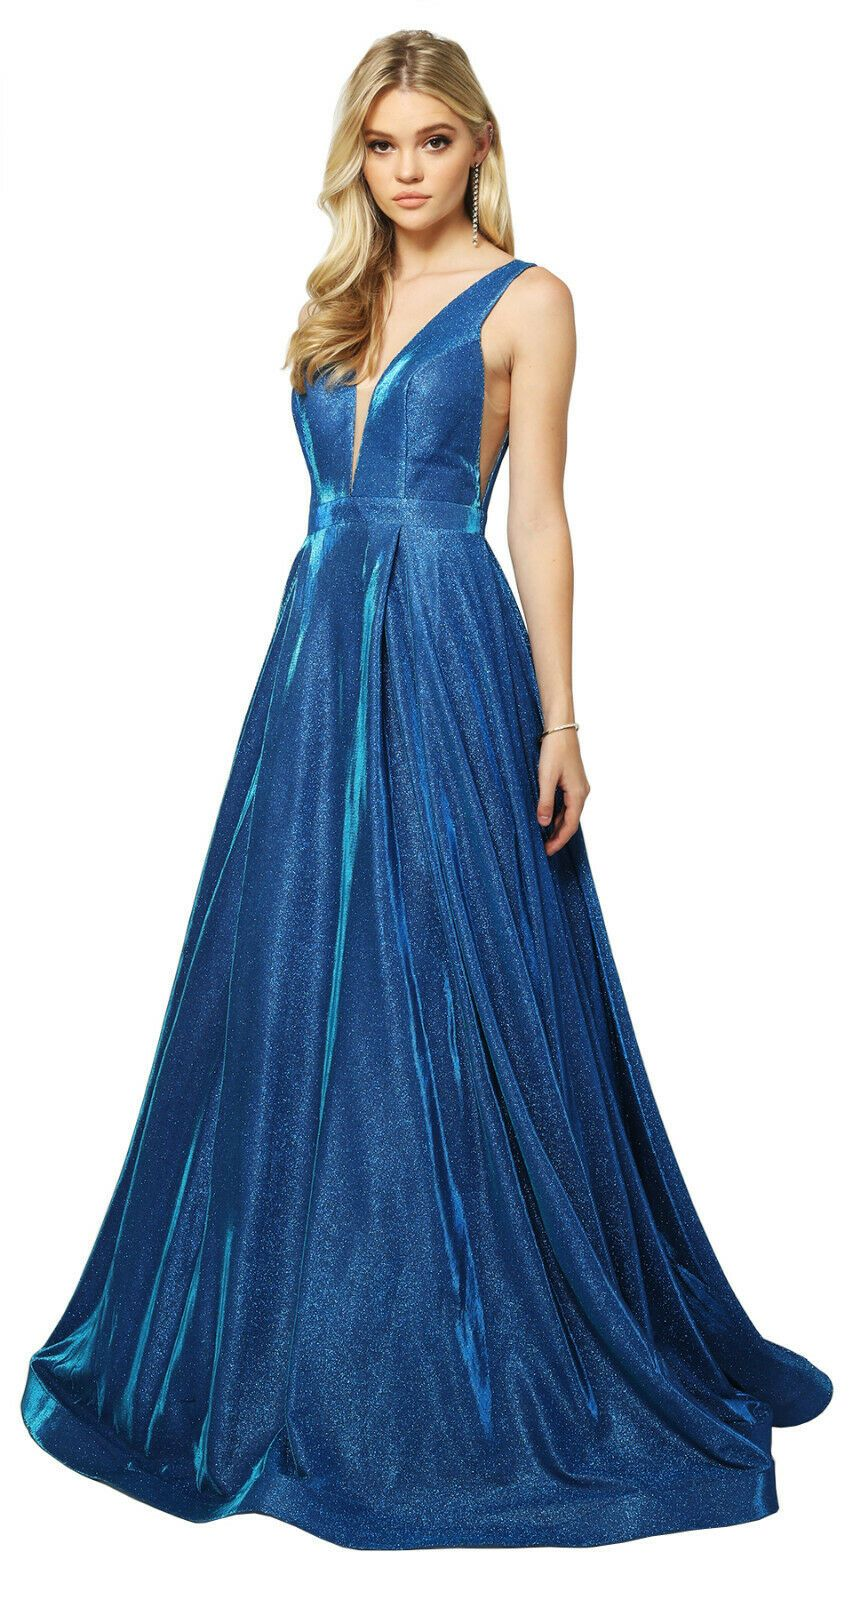 SALE STRETCHY PROM DANCE DRESS FORMAL PAGEANT RED CARPET EVENING GOWN GALA PARTY